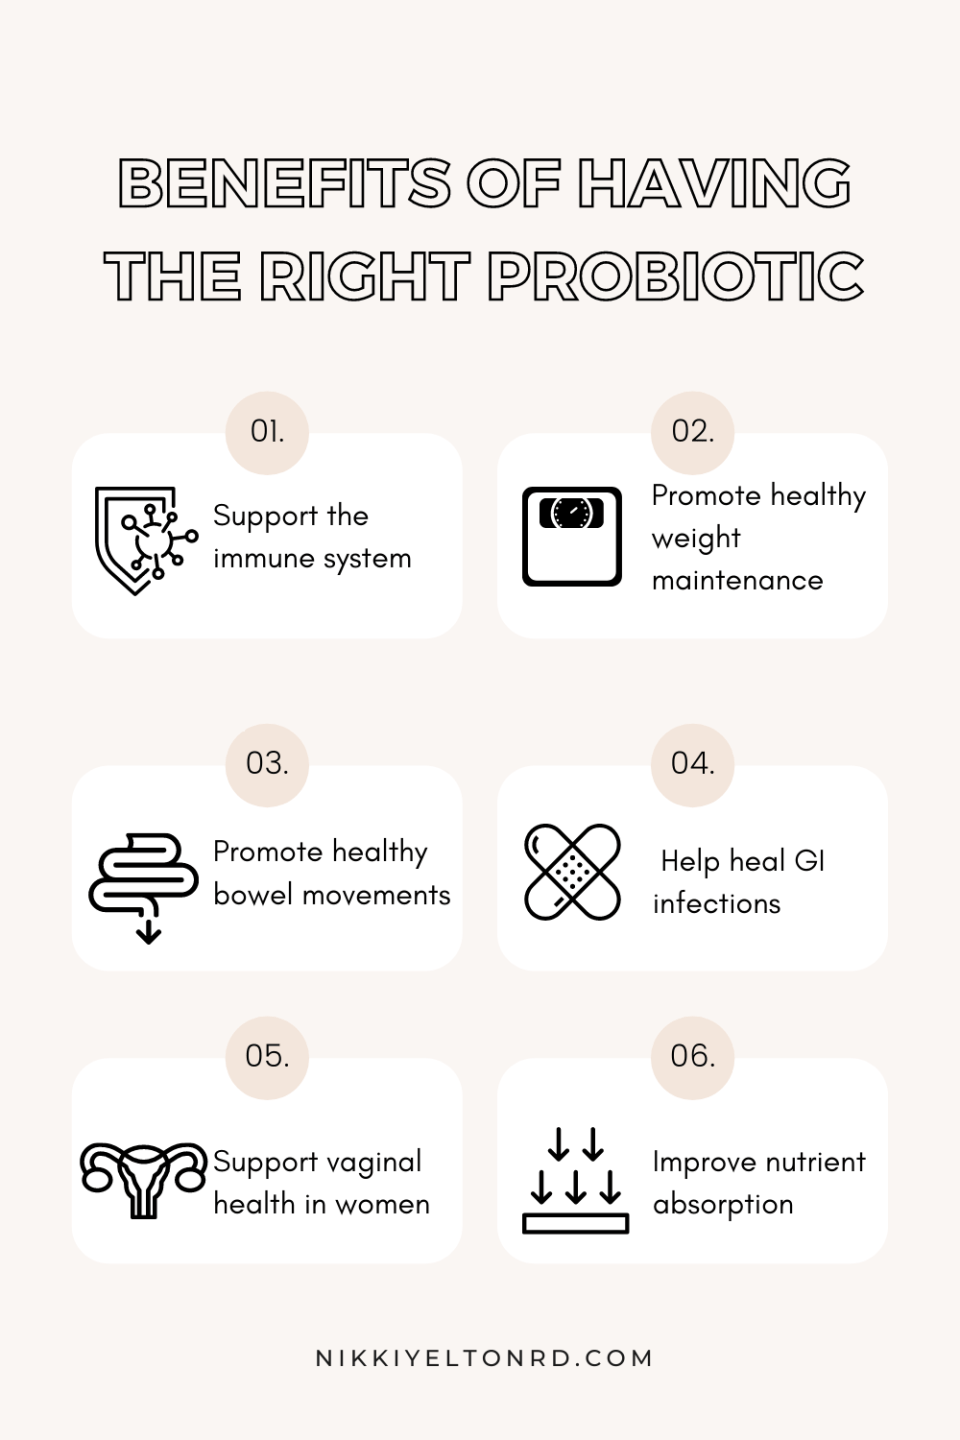 Probiotics support the immune system, healthy bowel movements, weight maintenance, and more